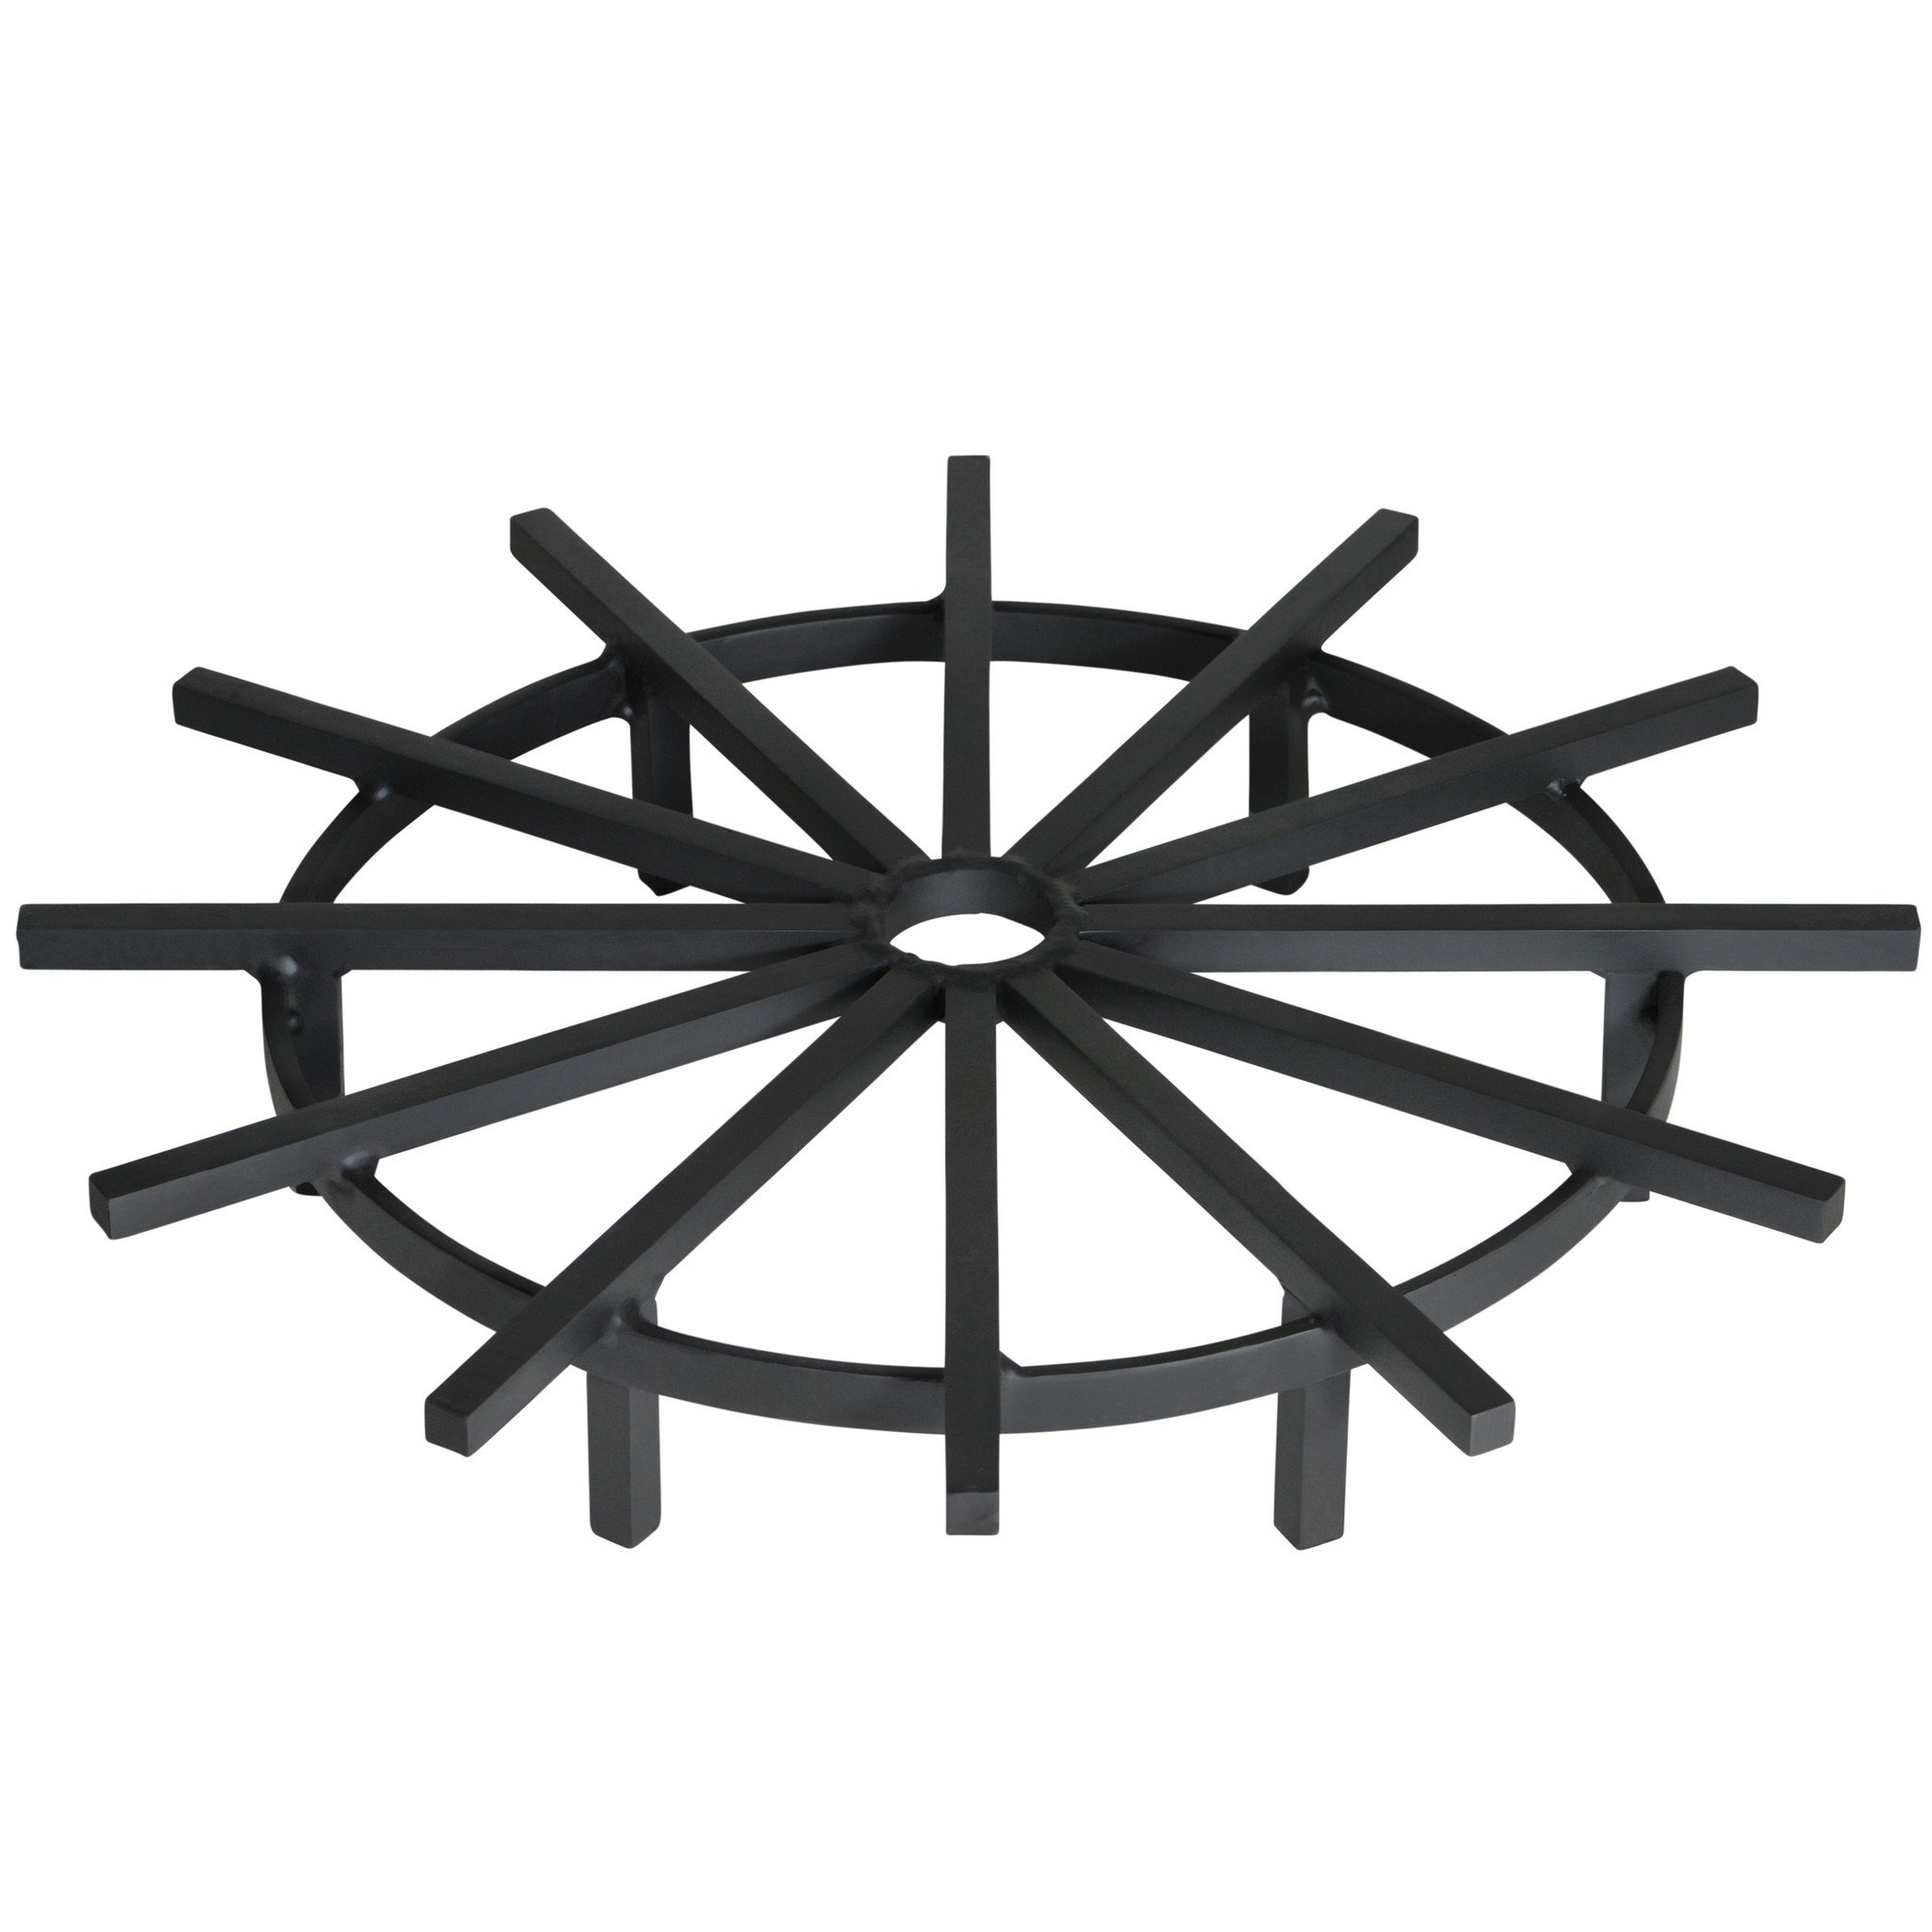 Heritage Products Super Heavy Duty 28 Inch Ship's Wheel Fire Pit Grate - Made in the USA